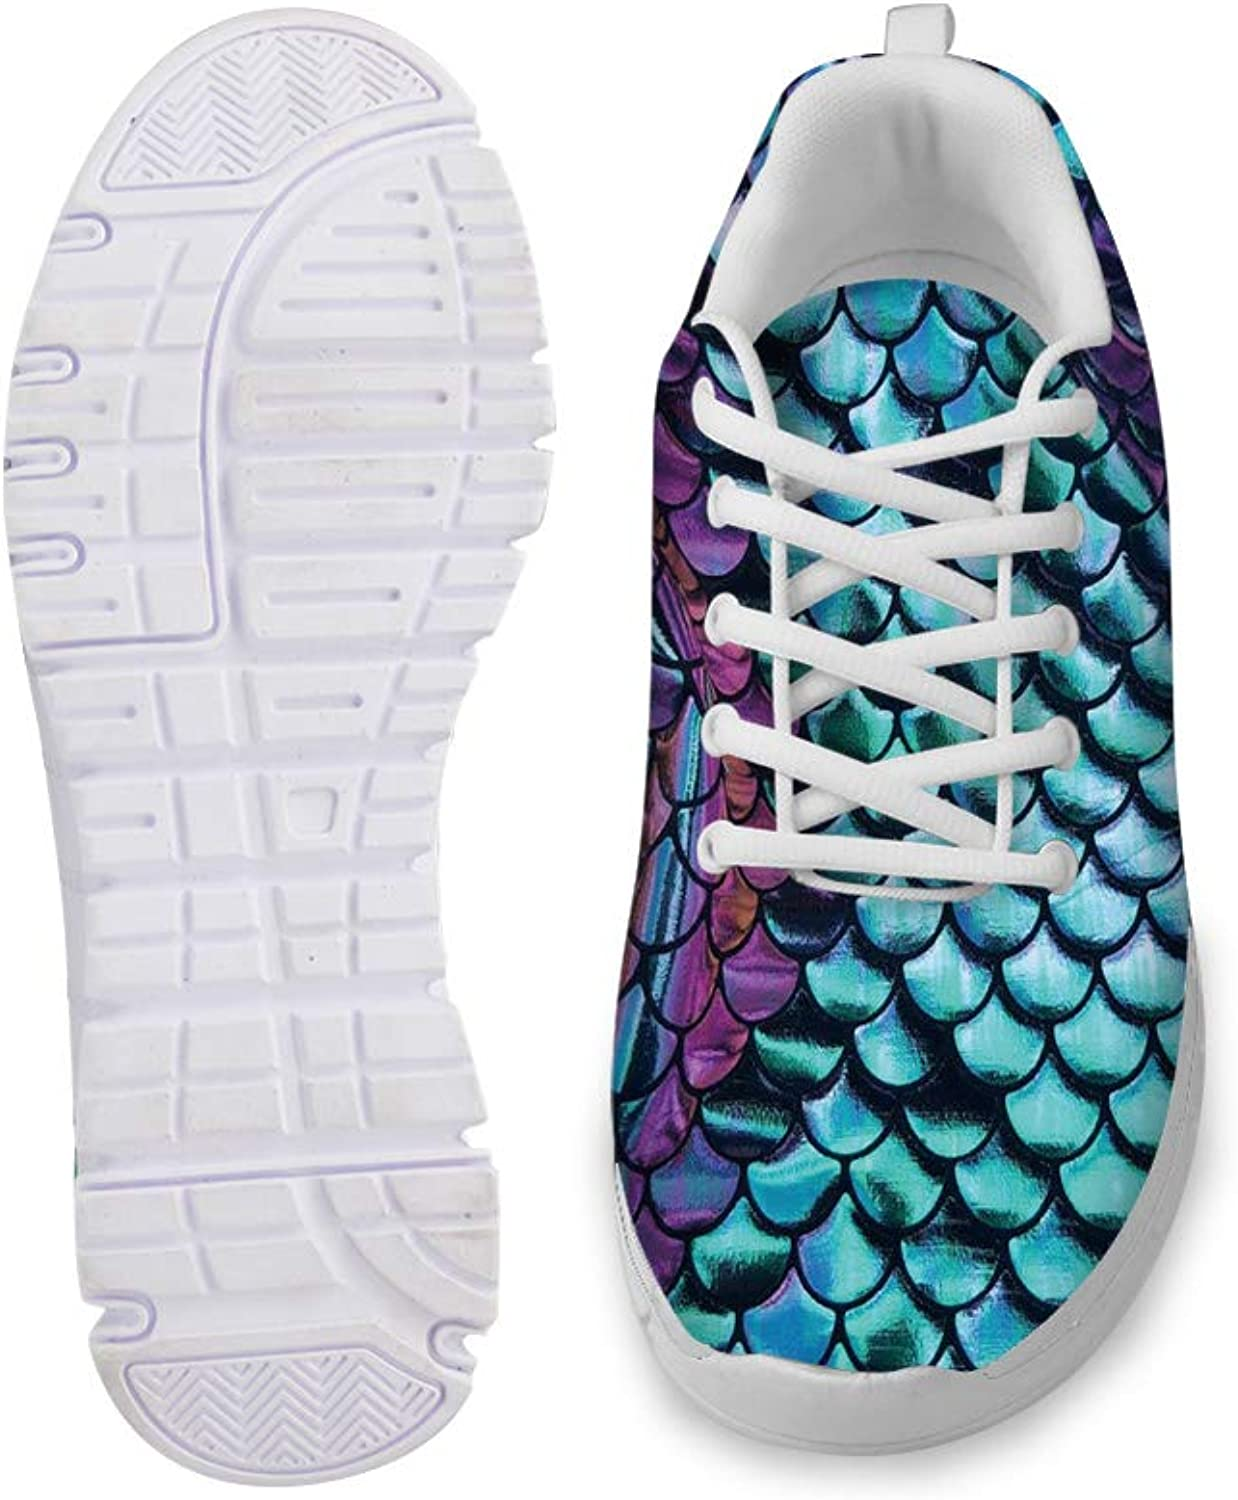 Owaheson Lace-up Sneaker Training shoes Mens Womens Paint Purple Green Fish Scales